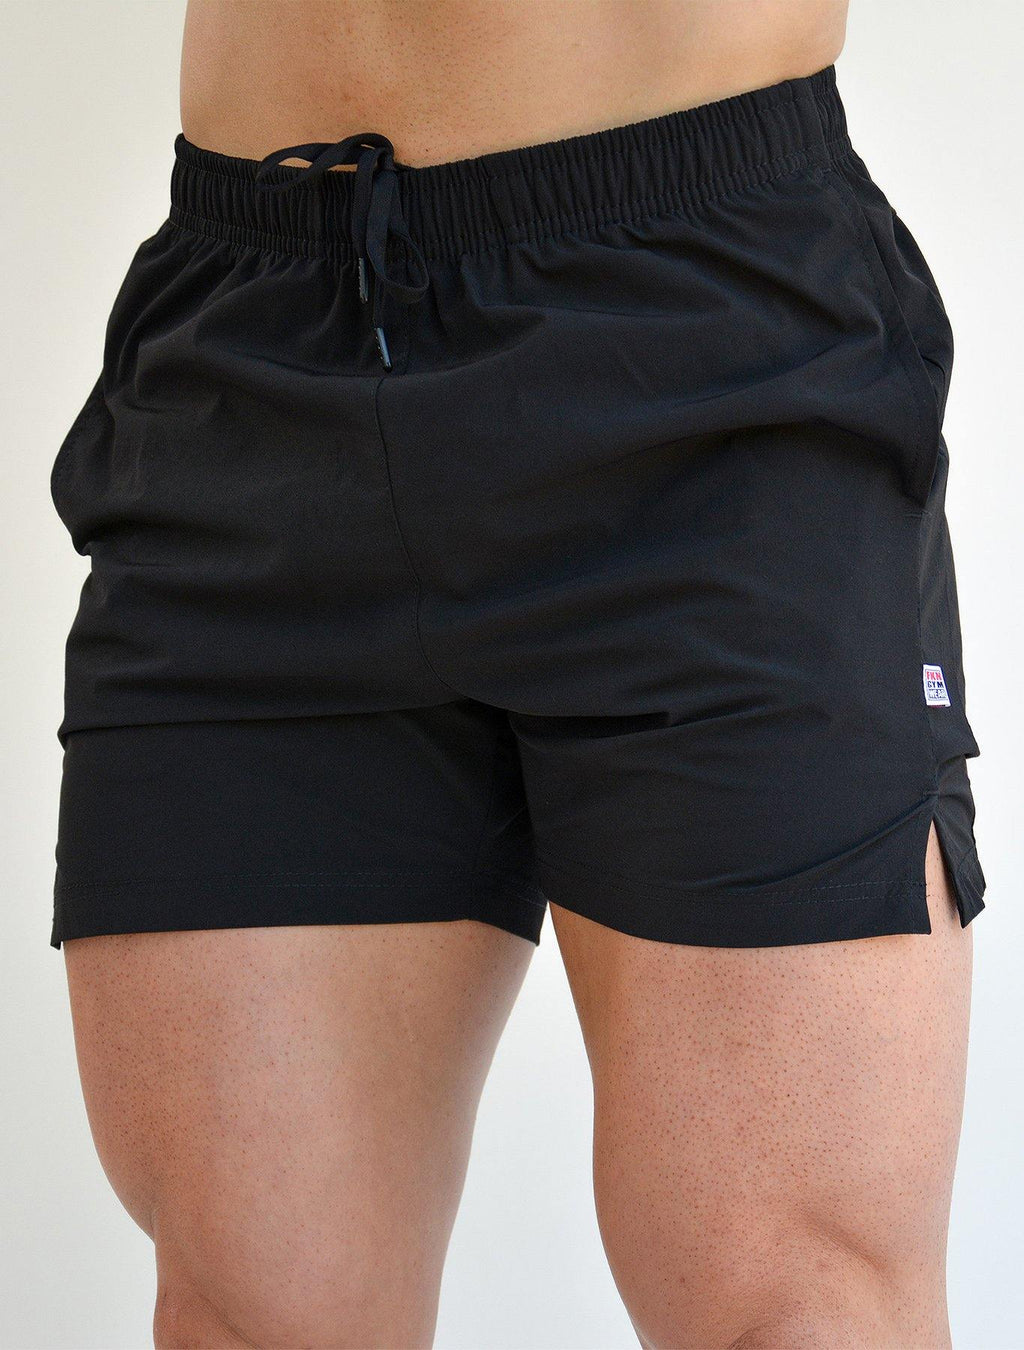 Apollo | Men's Gym Shorts - FKN Gym Wear